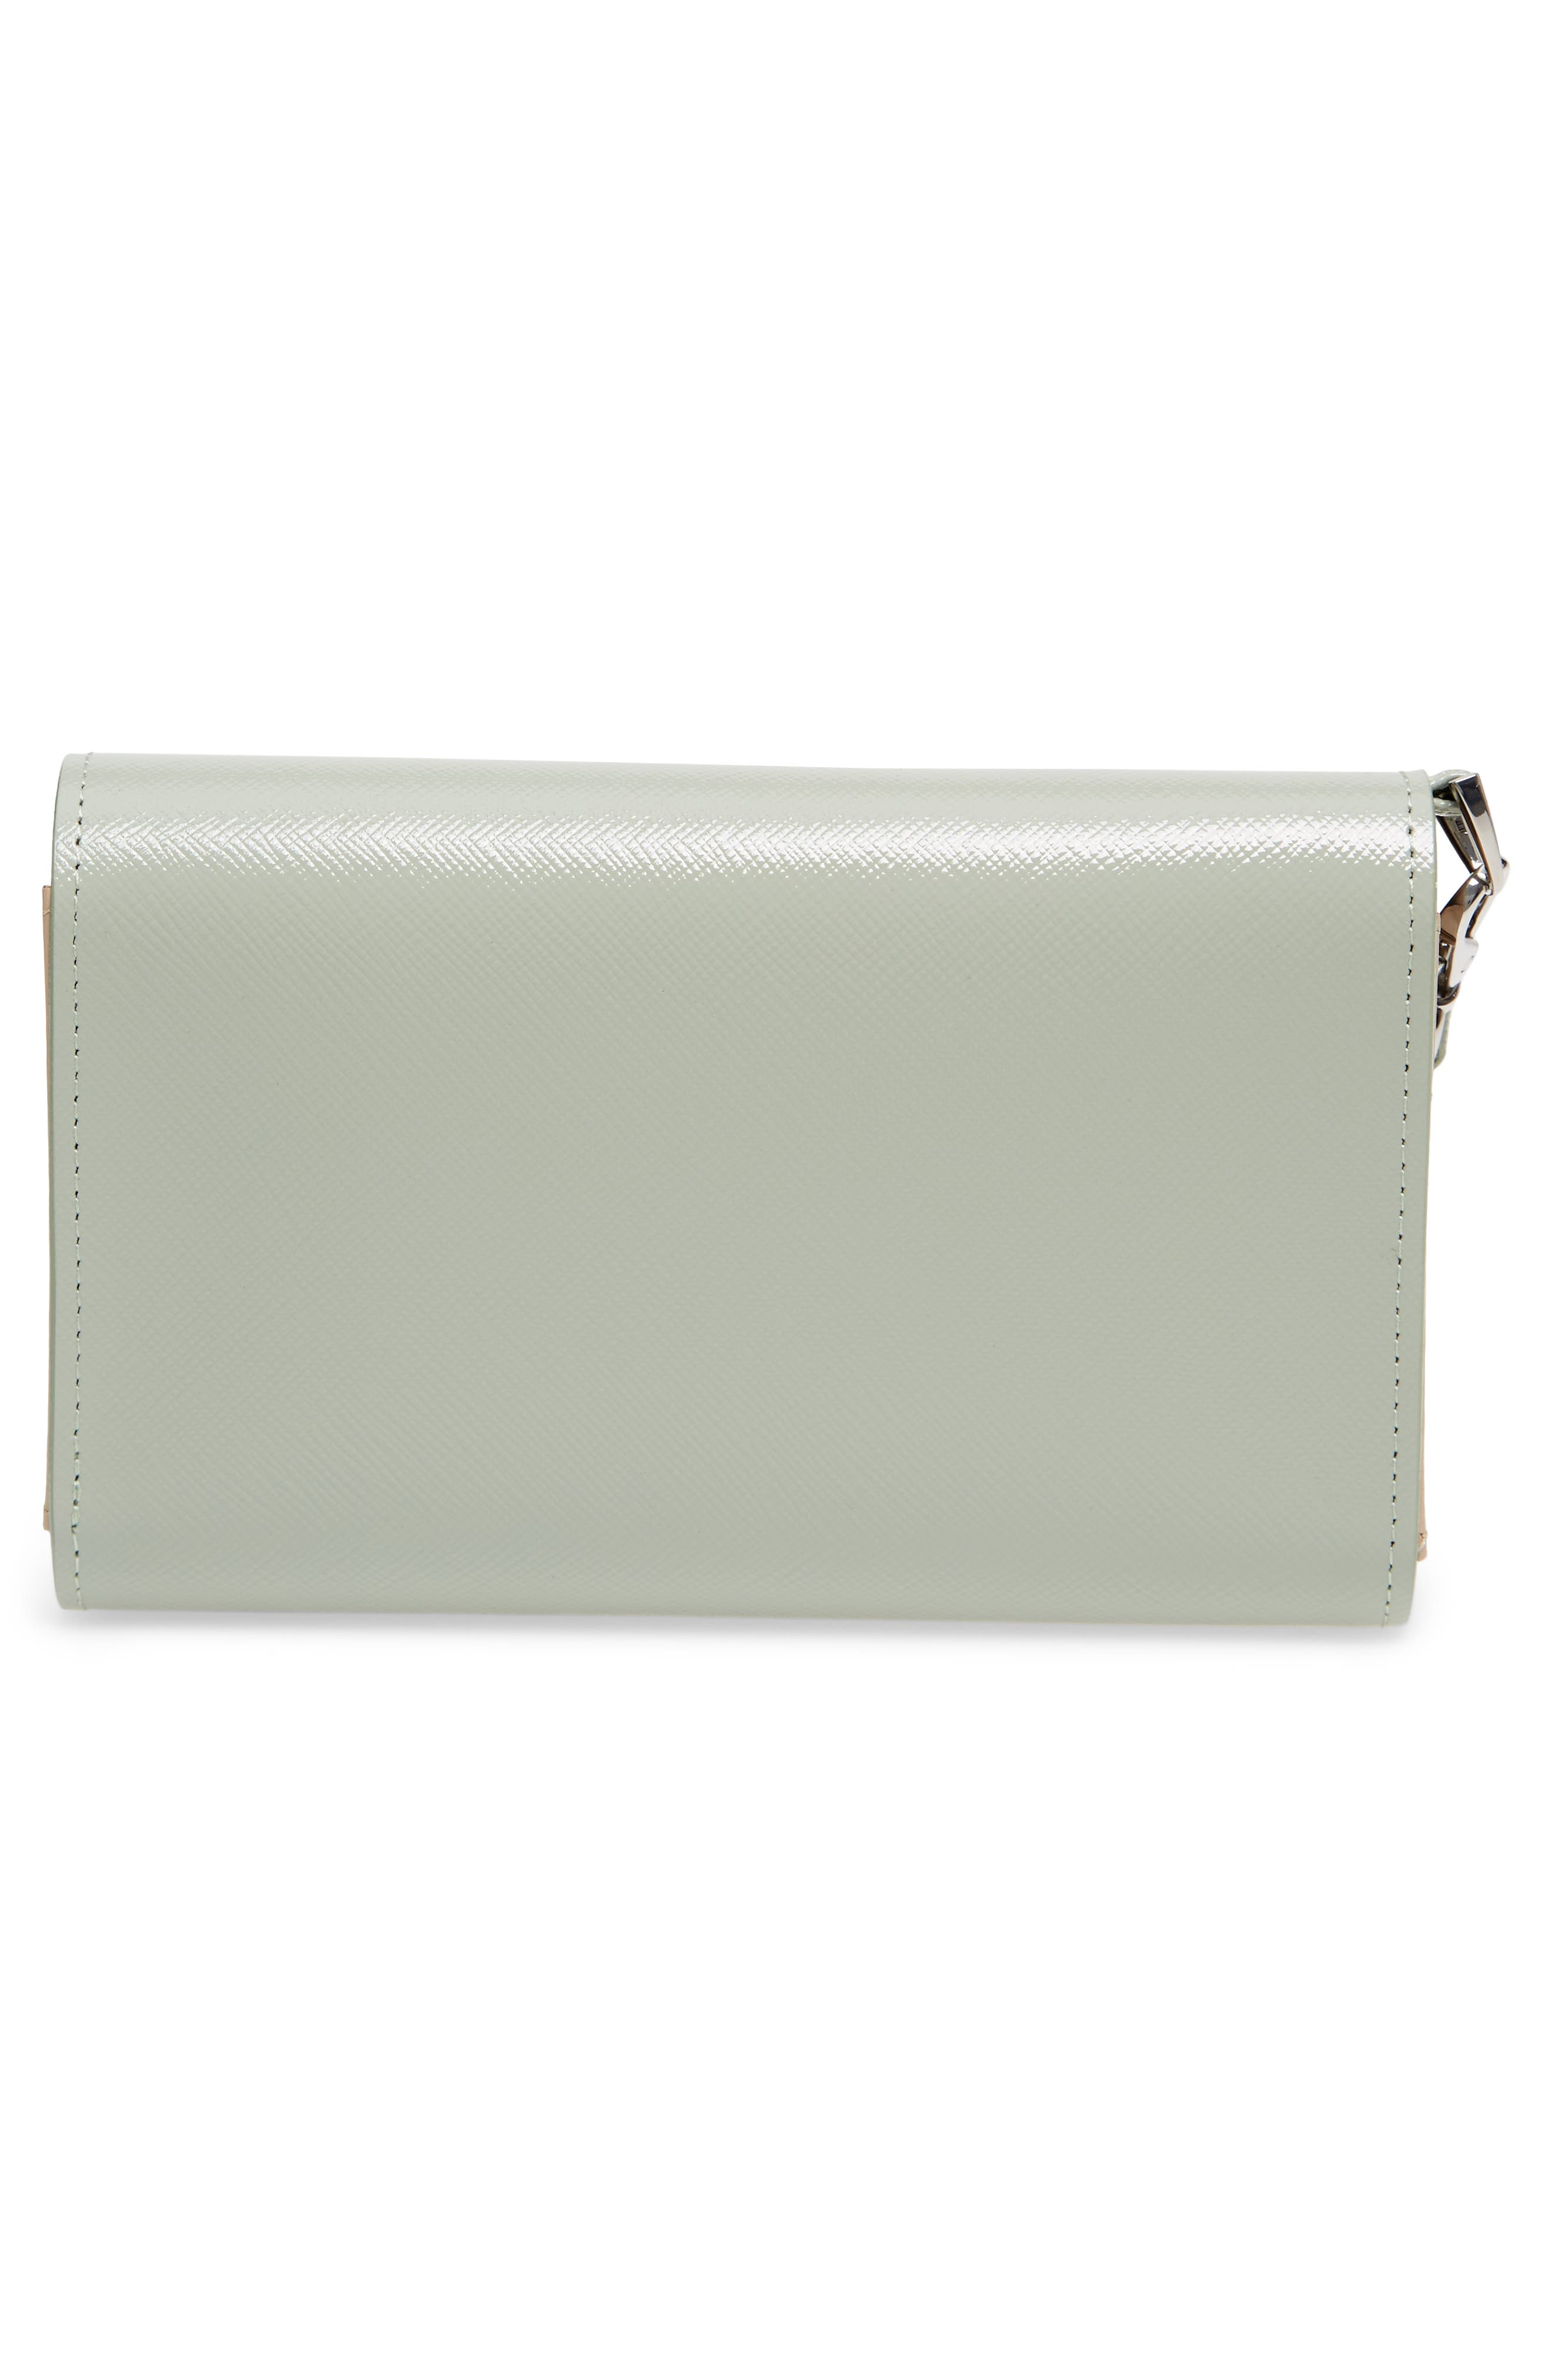 Trifold Leather Wallet,                             Alternate thumbnail 14, color,